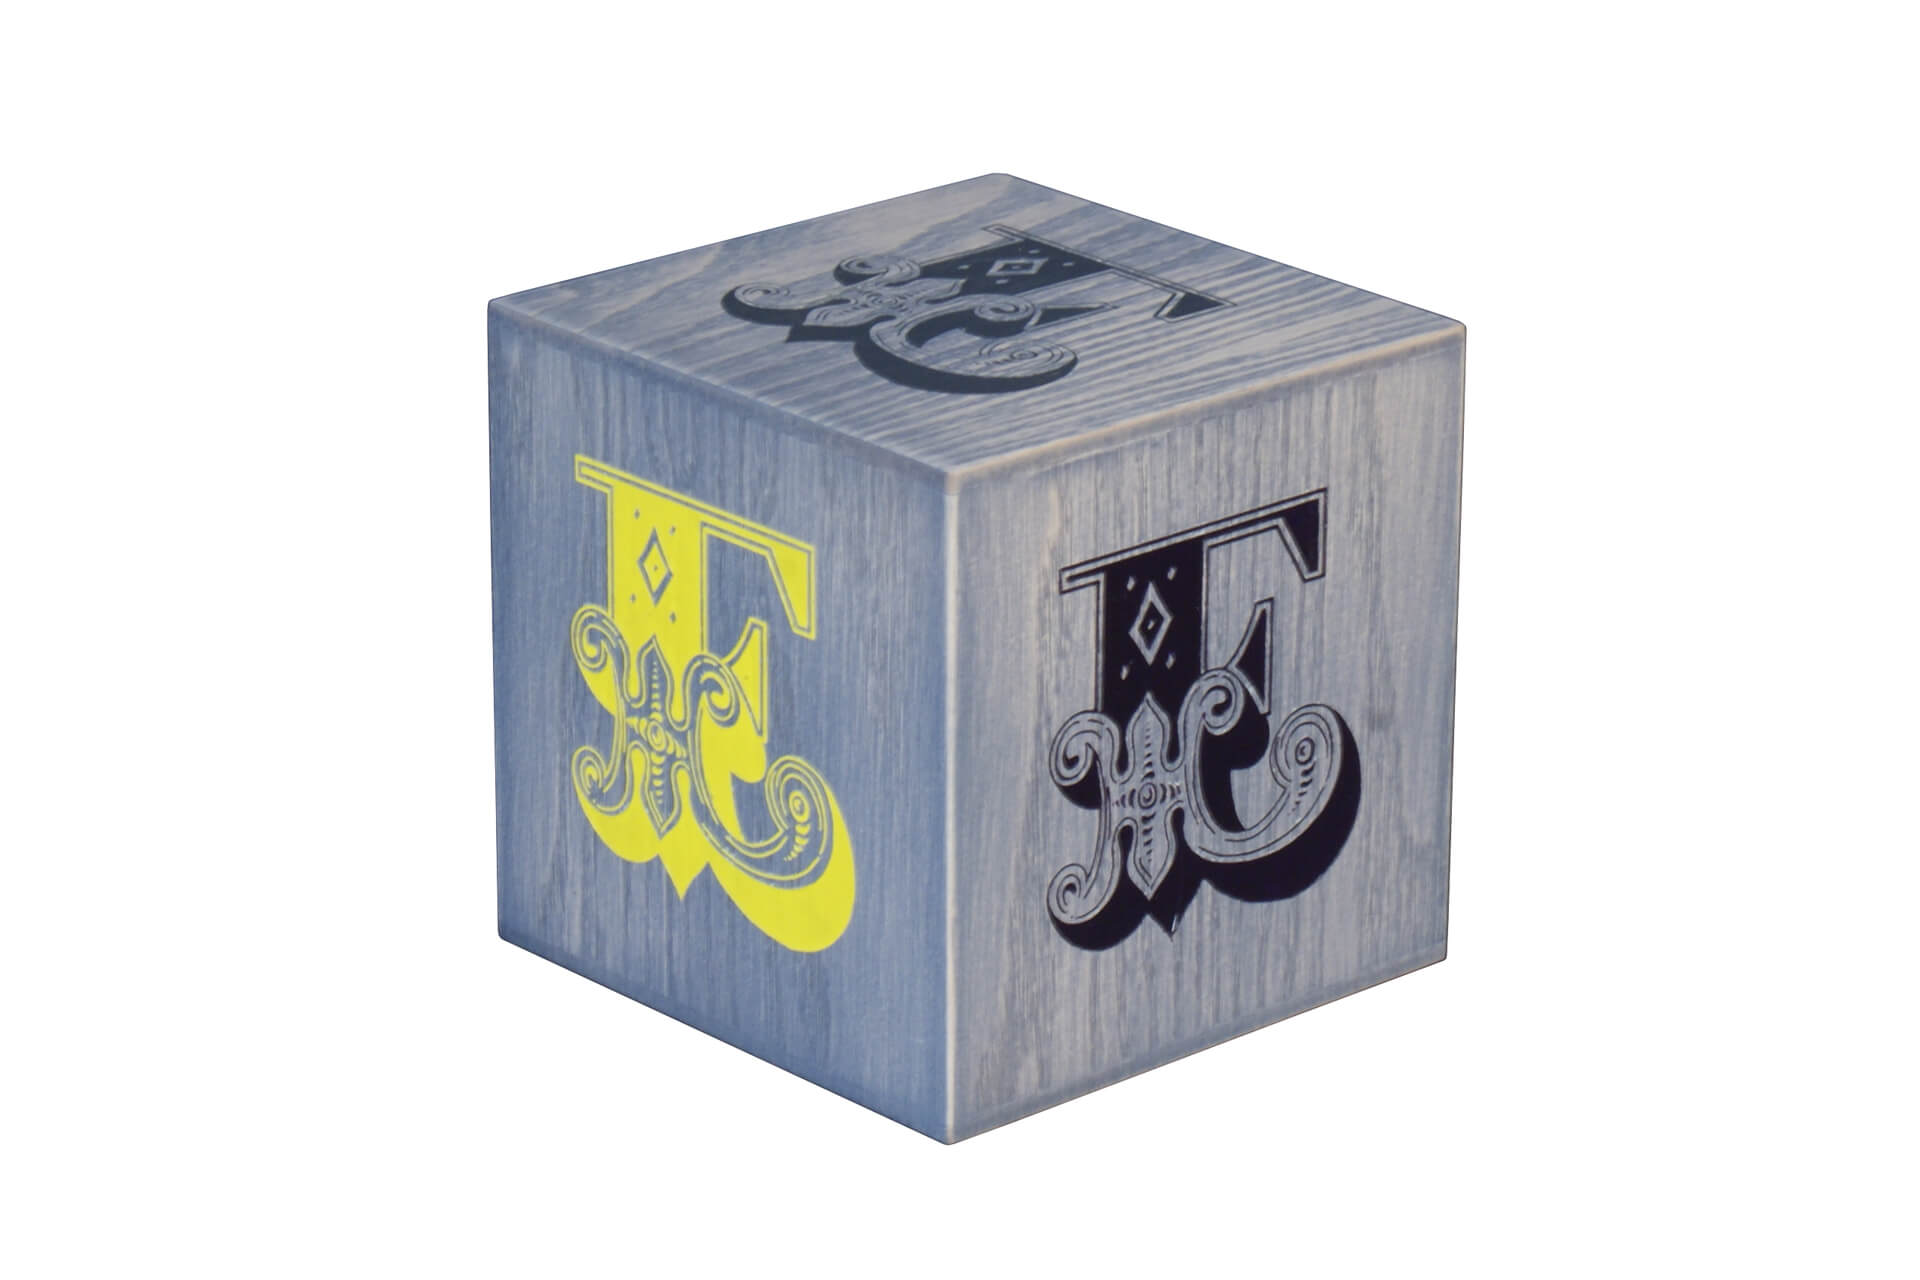 promotional wooden cube for retail display